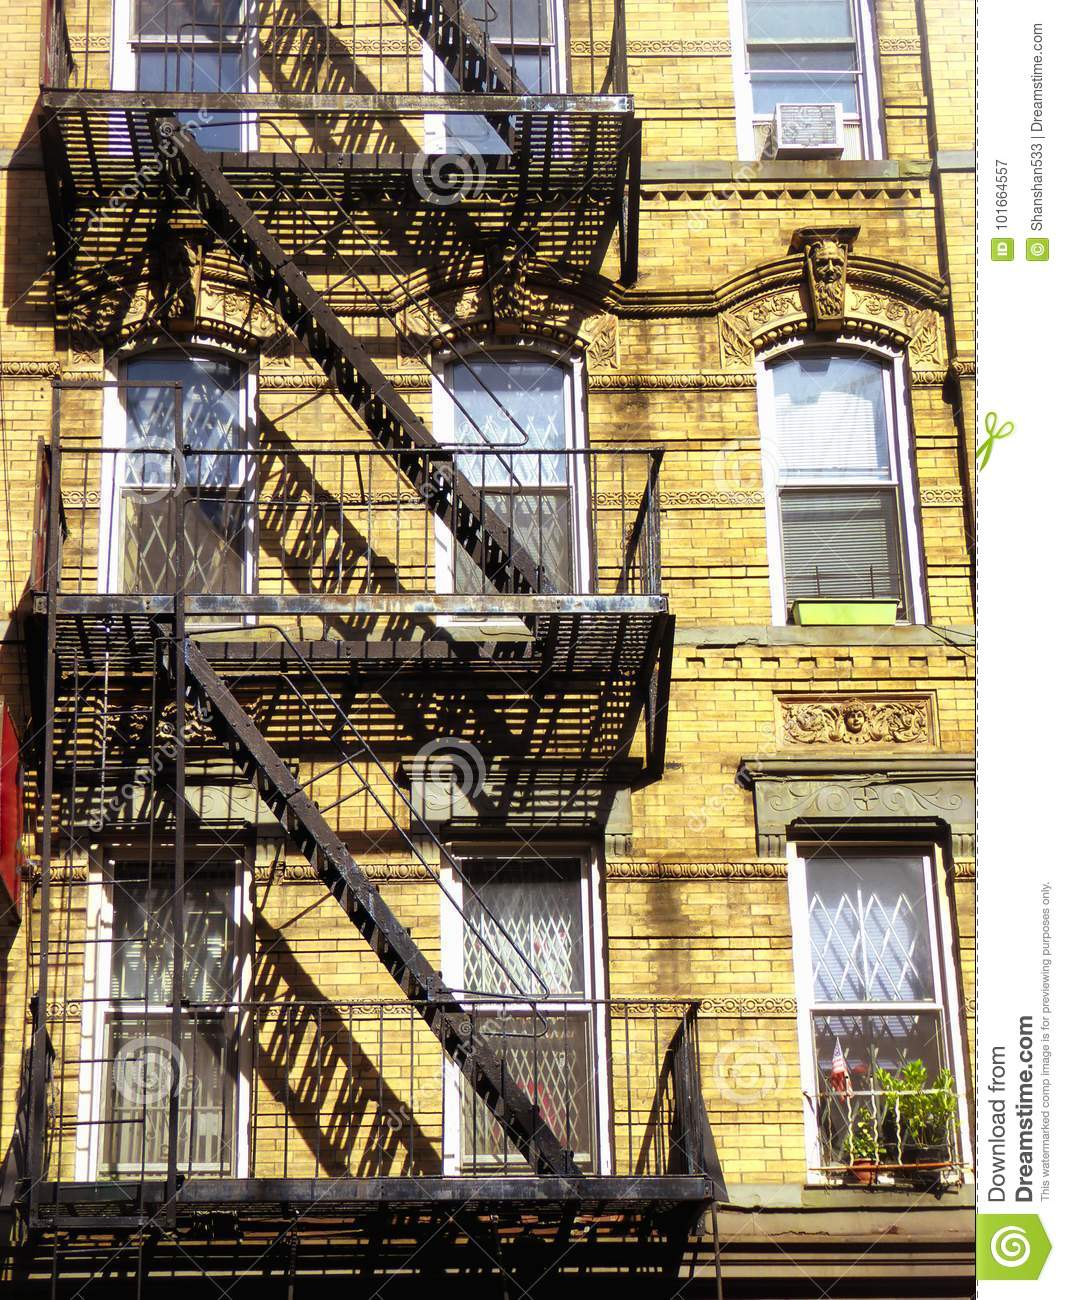 New York Apartments Outside: New York City Fire Escape Ladder Stock Image